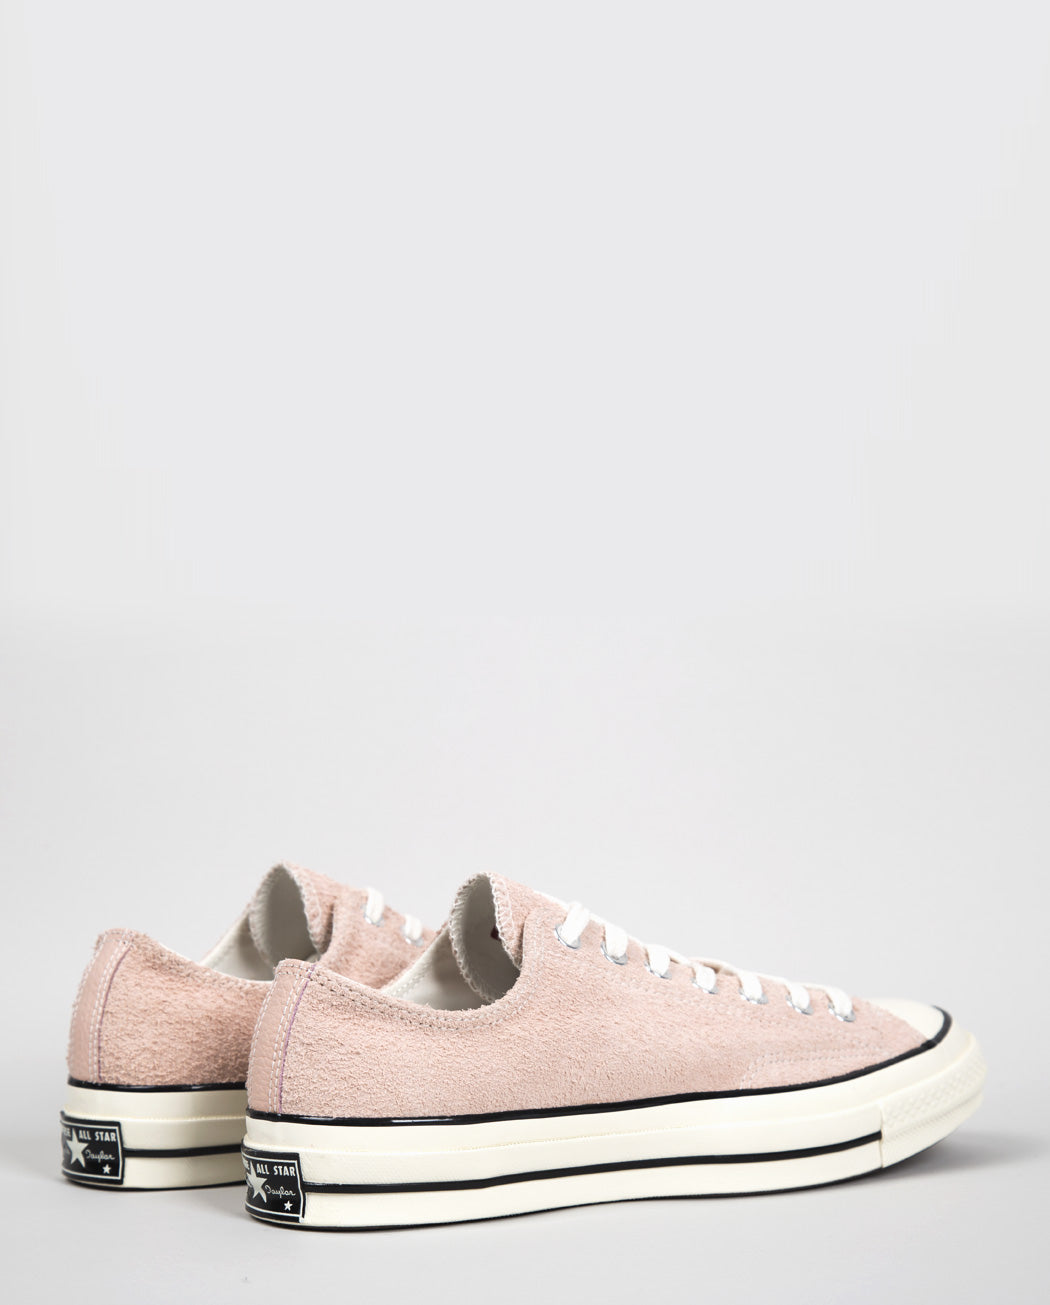 212cec97a6a9 ... Pink  Converse 70 s Chuck Taylor Low (Canvas) - Dust ...